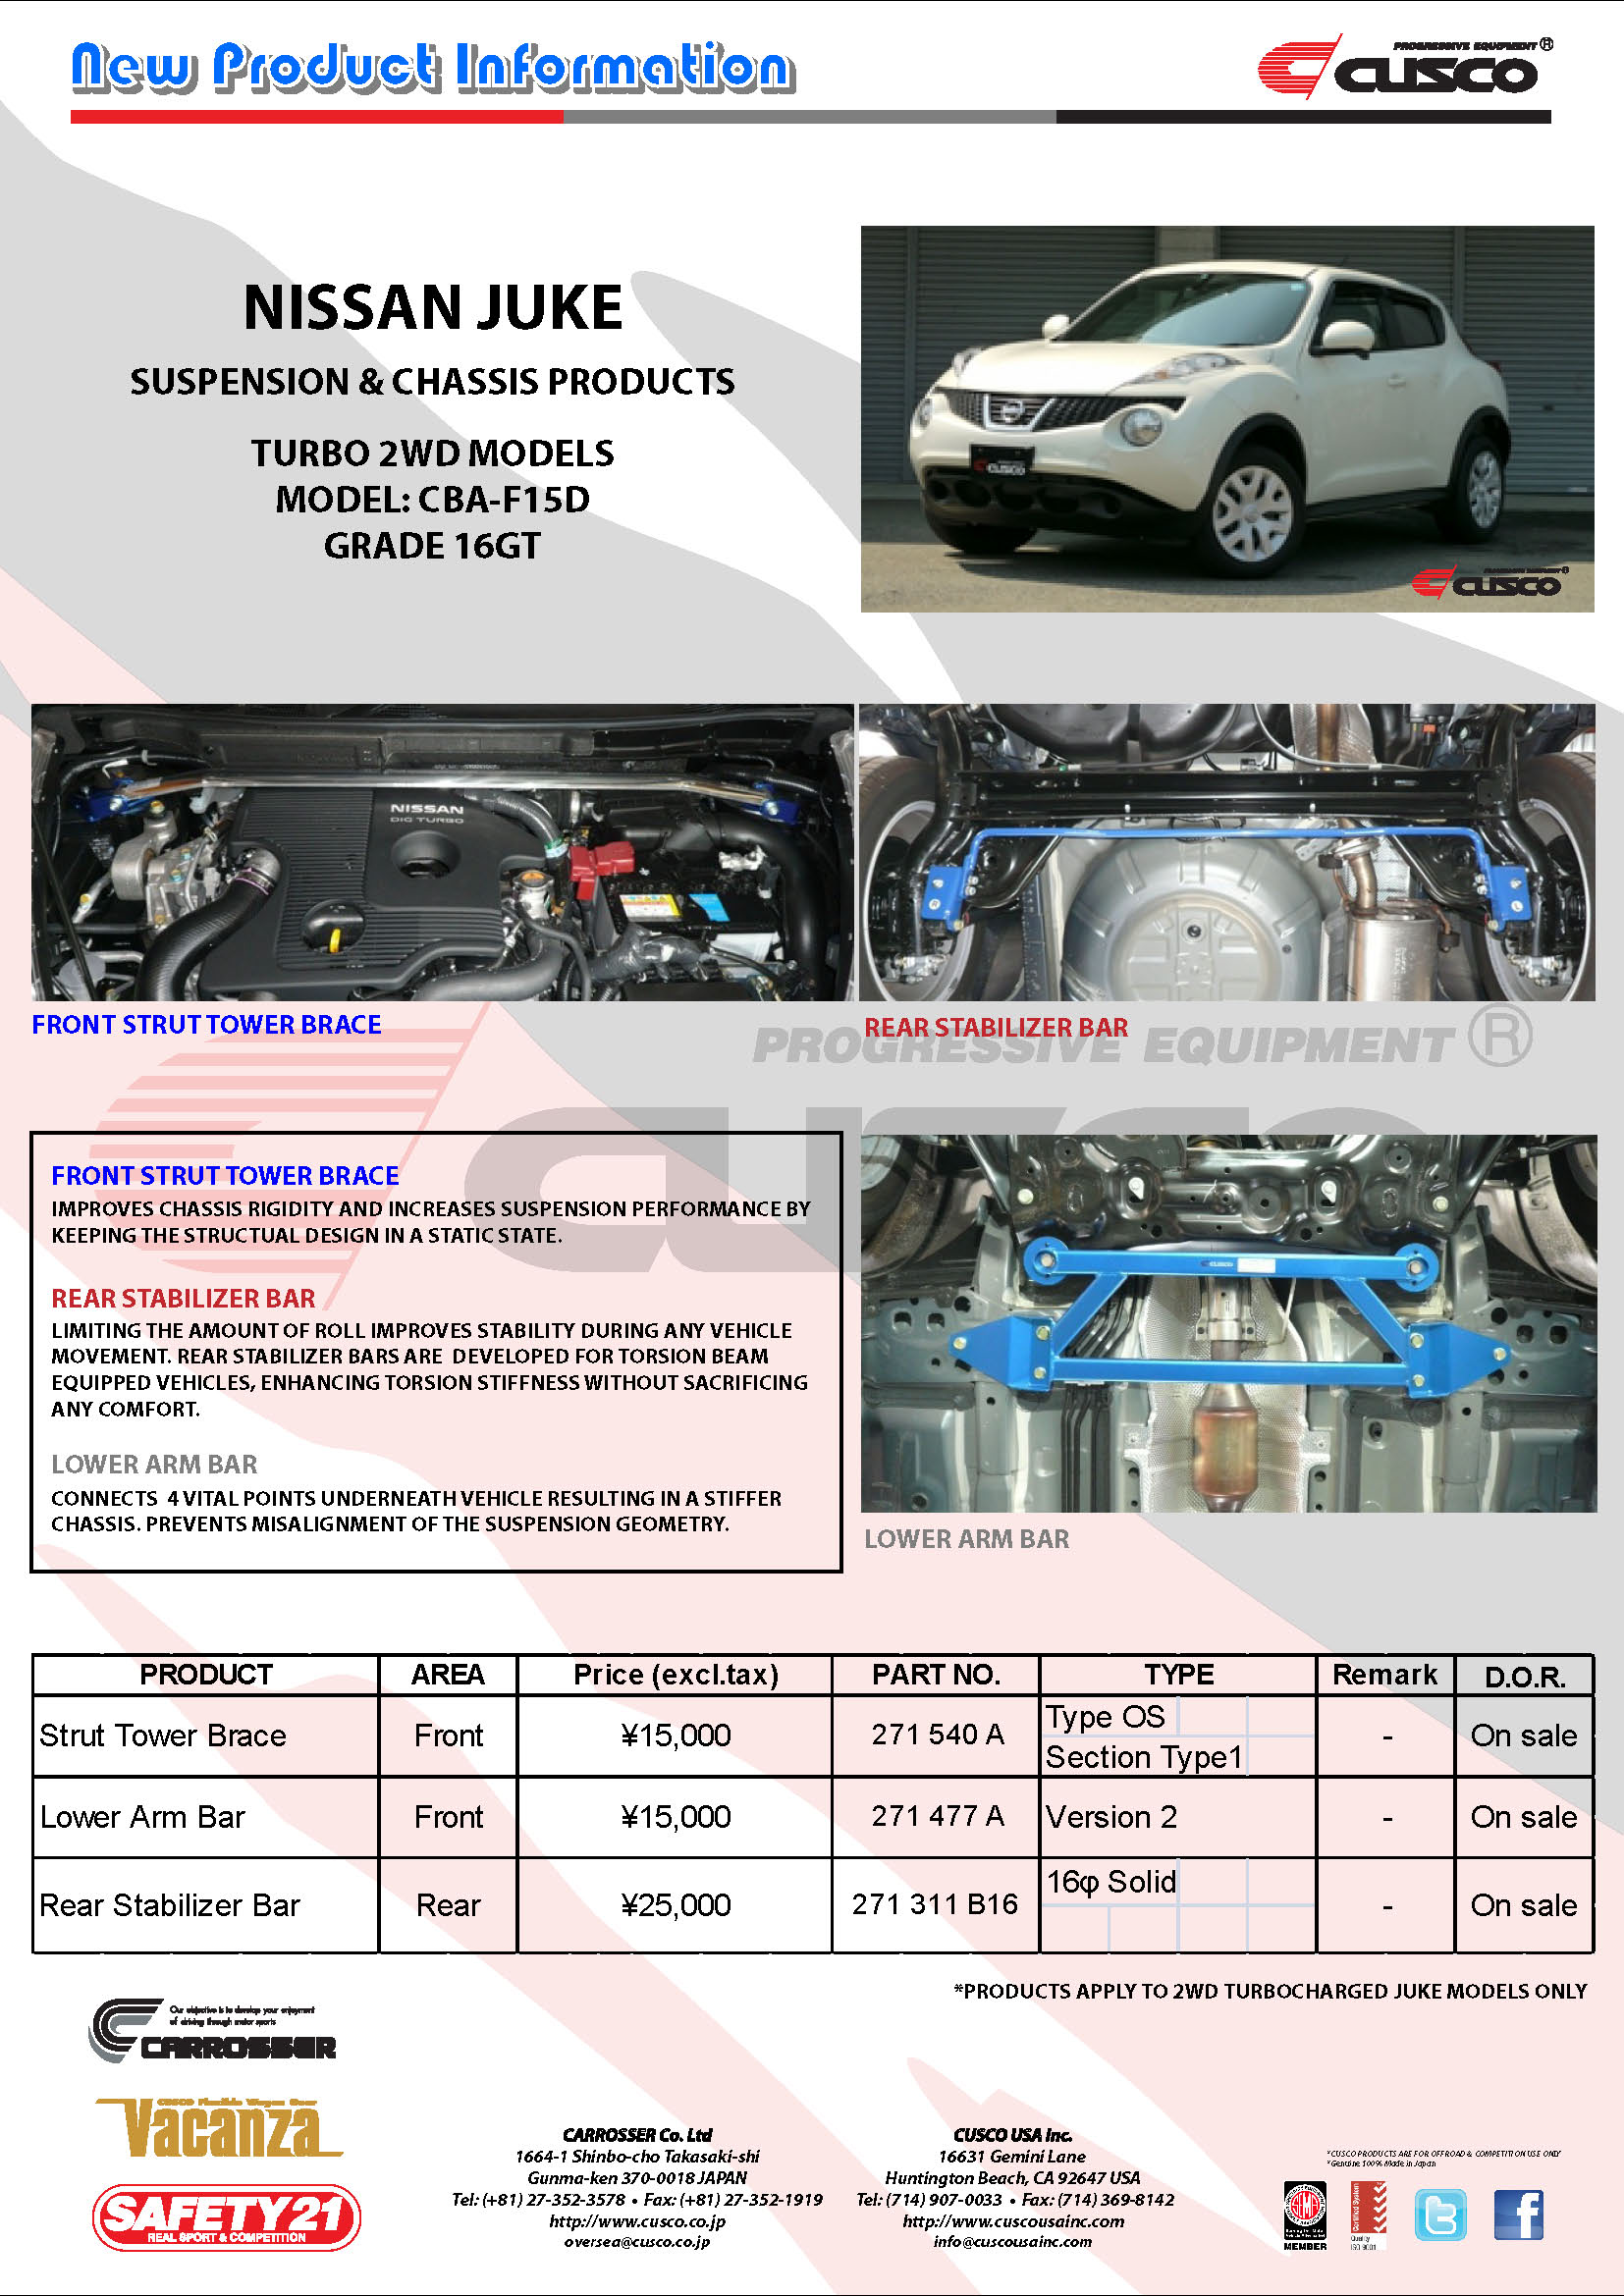 Nissan Juke Chassis and Suspension Product Release